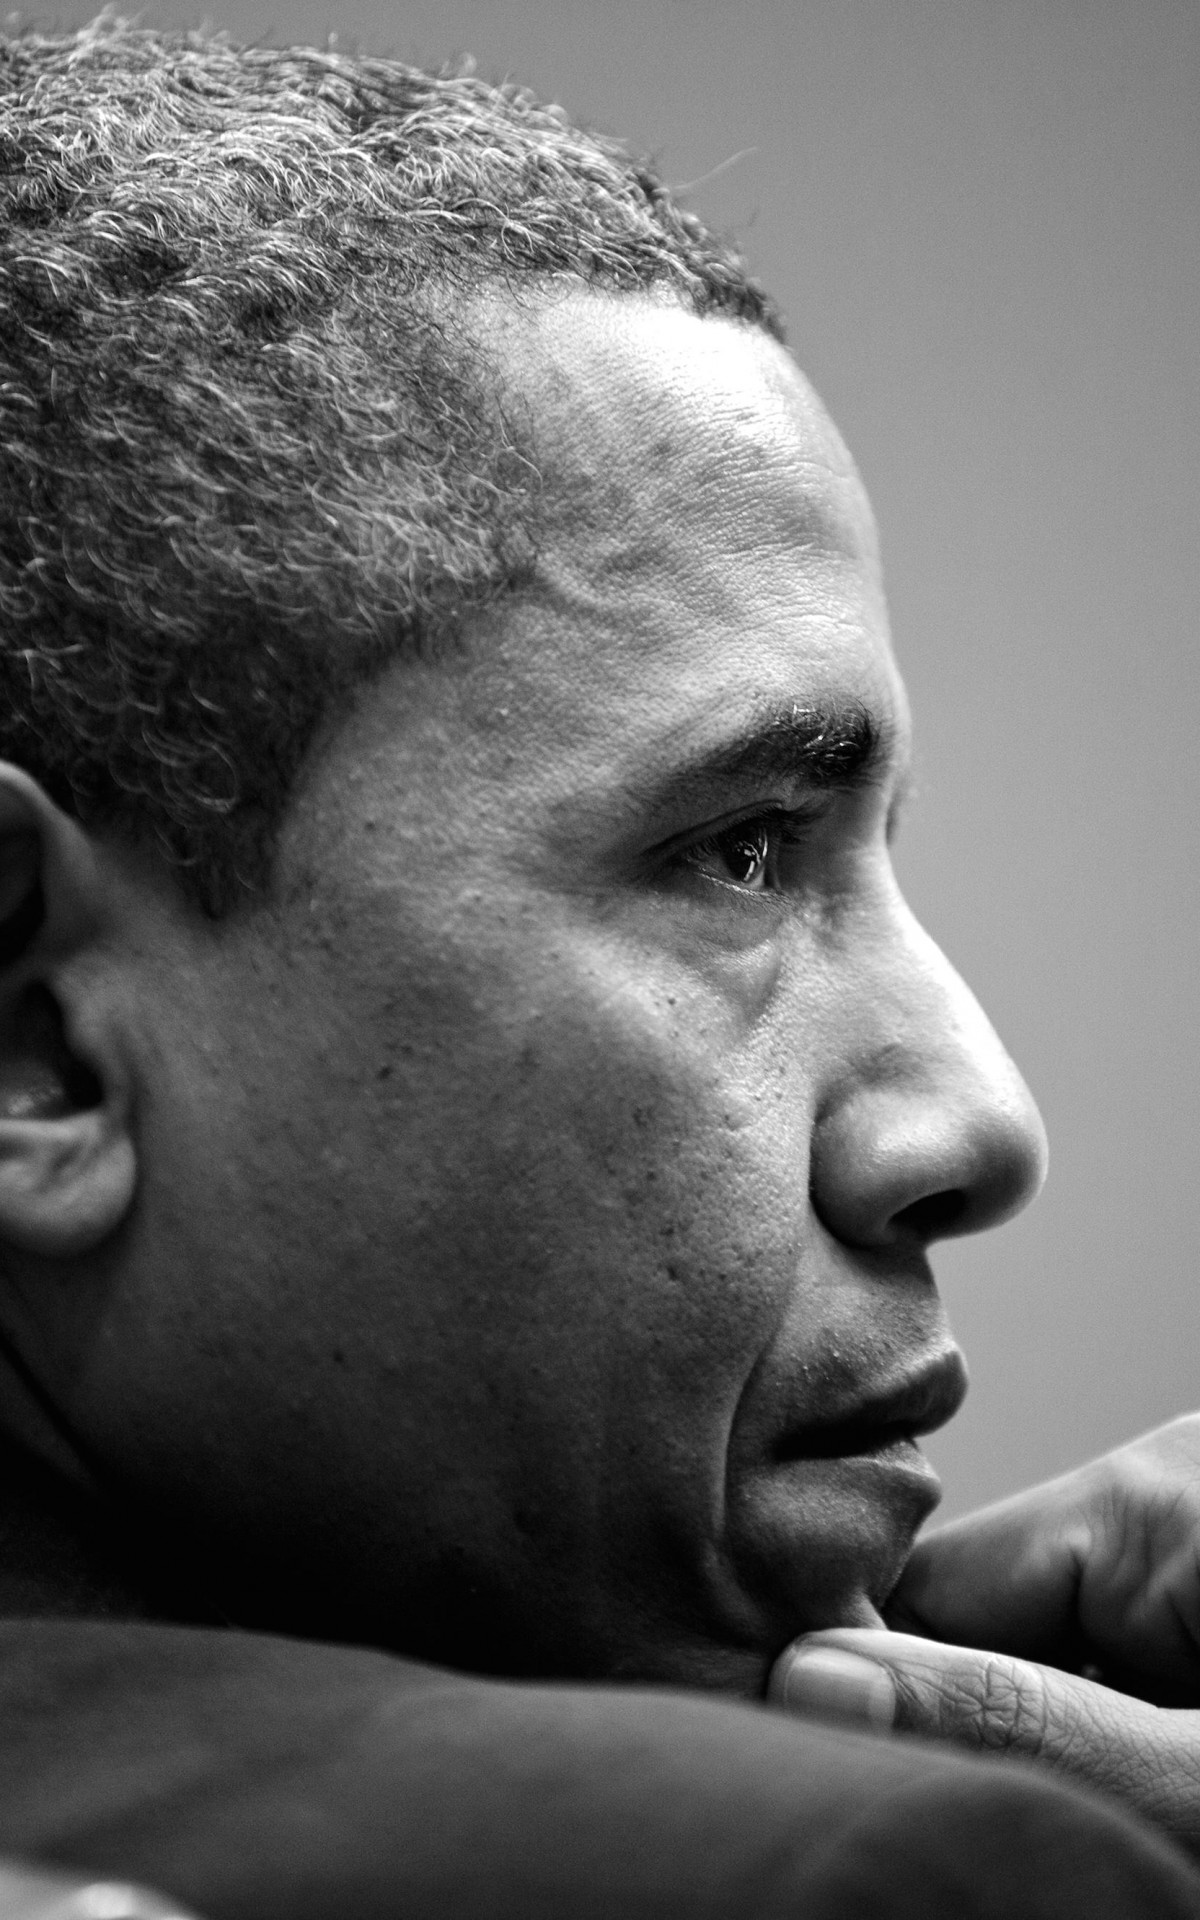 Barack Obama in Black & White Wallpaper for Amazon Kindle Fire HDX